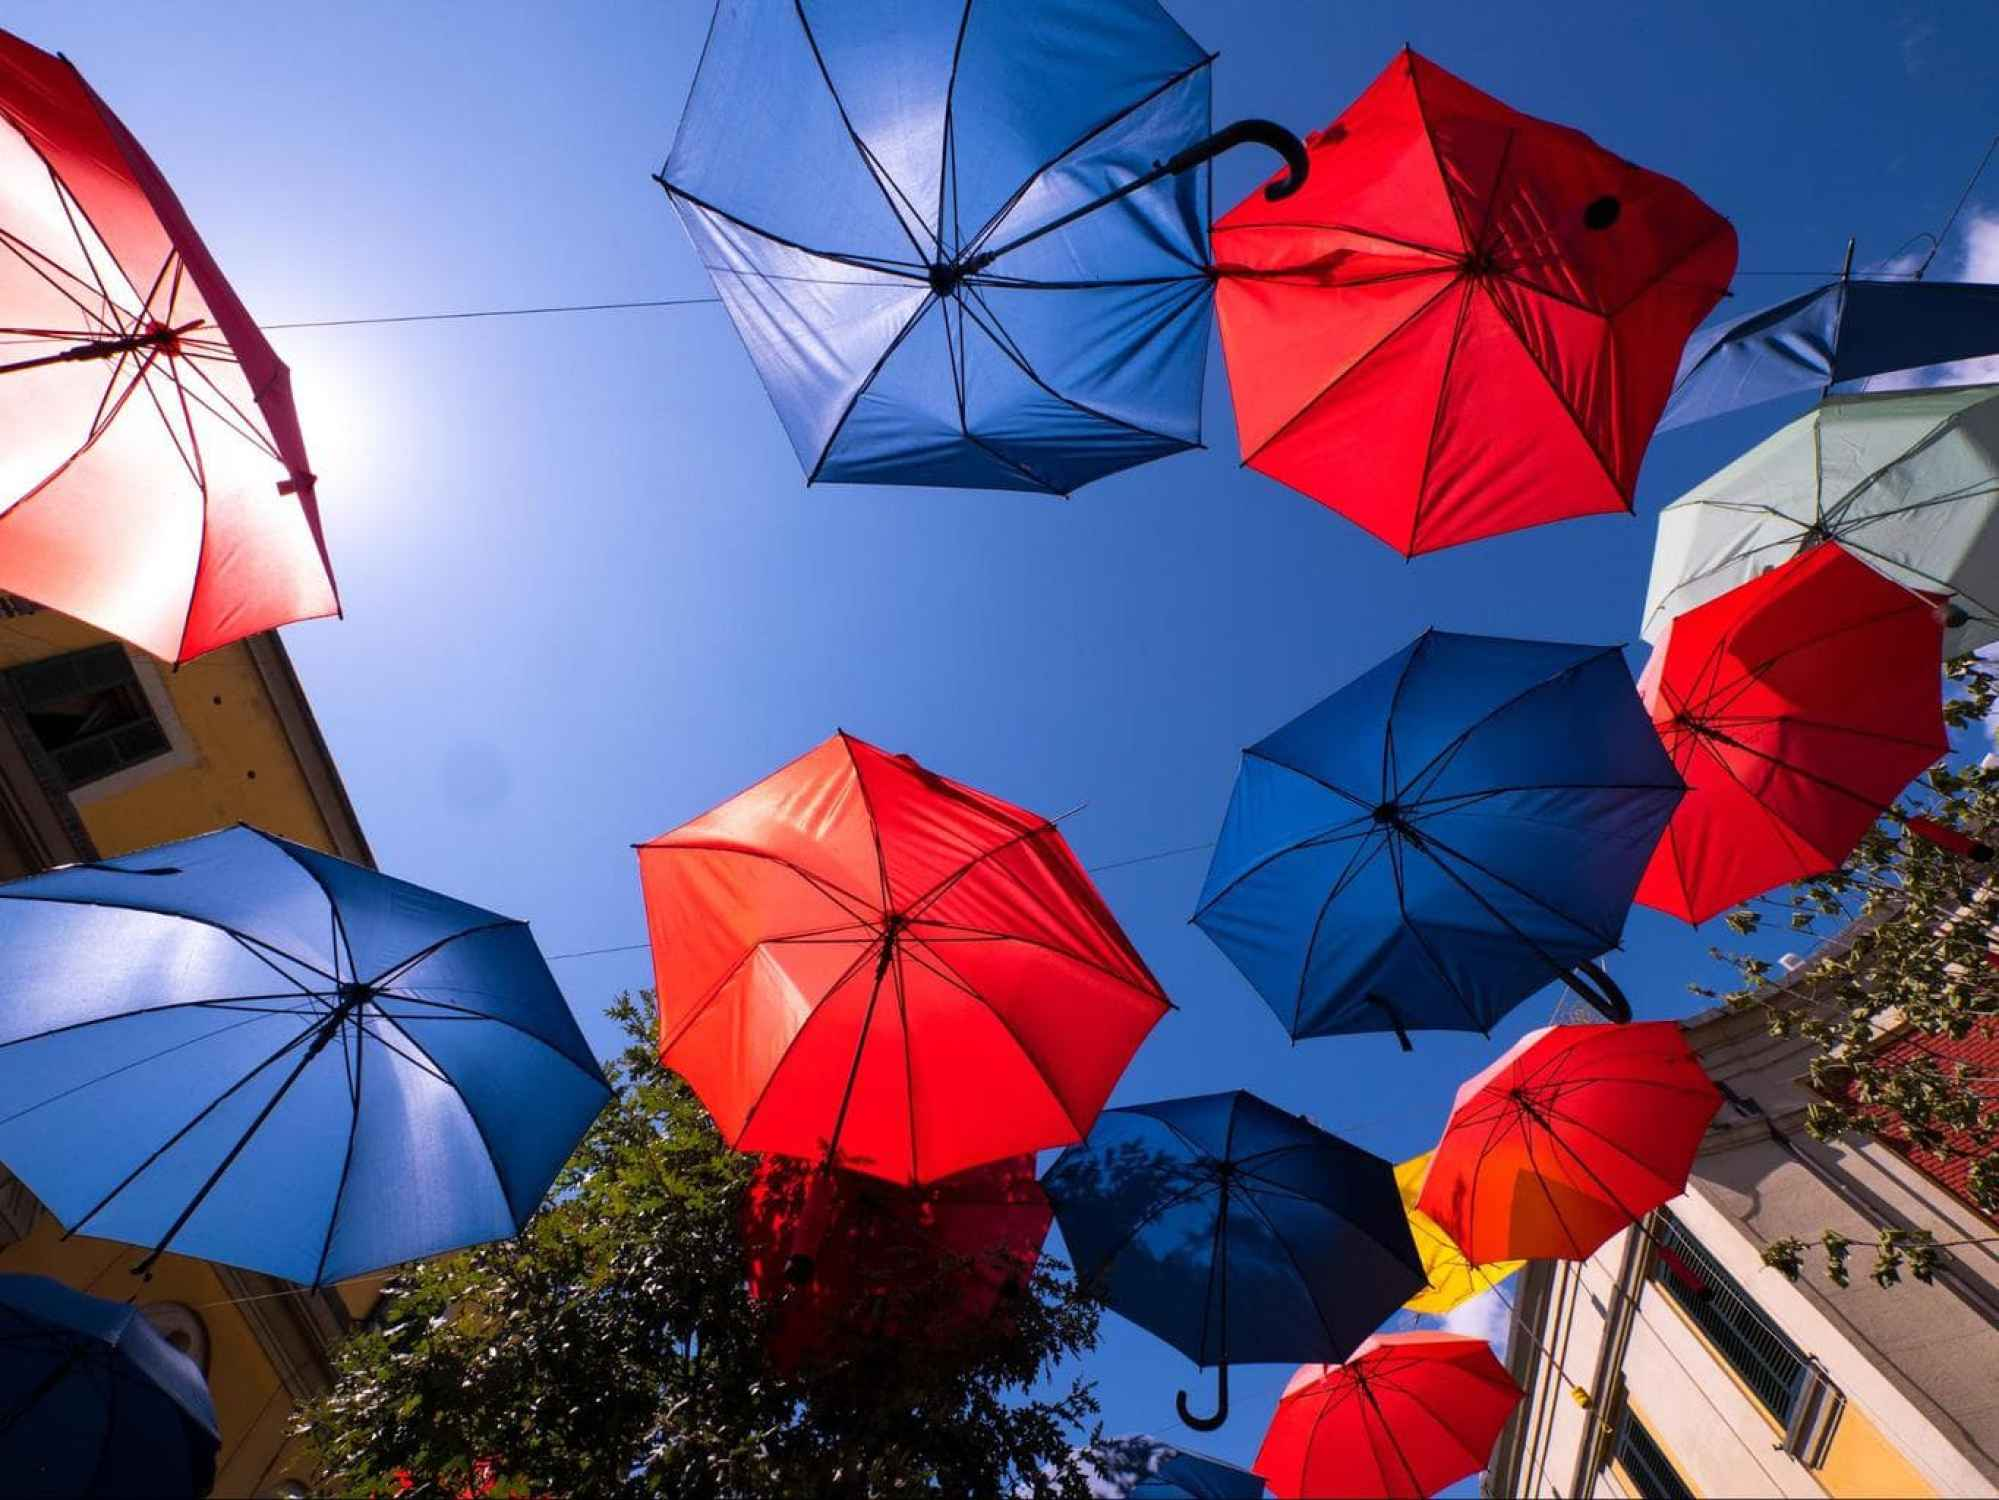 Upside down umbrellas in Tirana